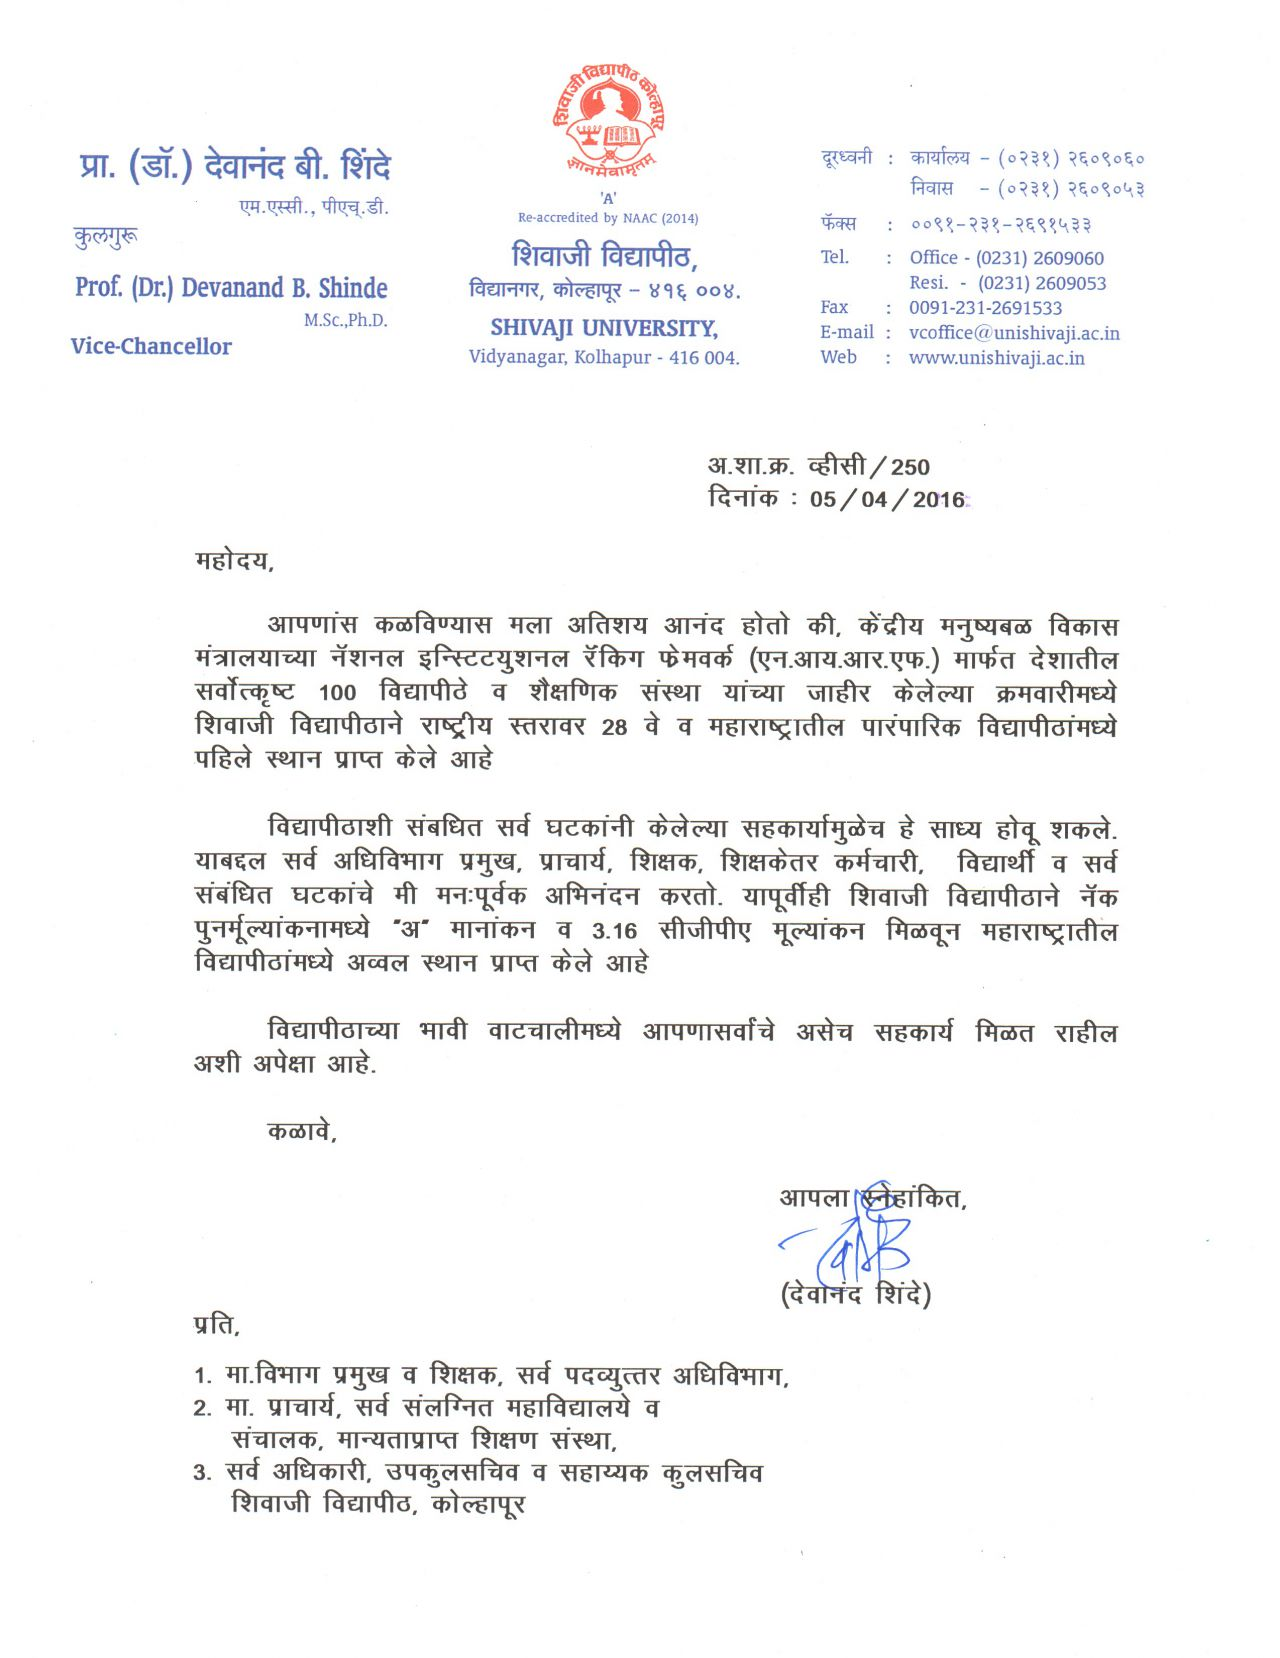 circular regarding nirf institutional ranking of shivaji university